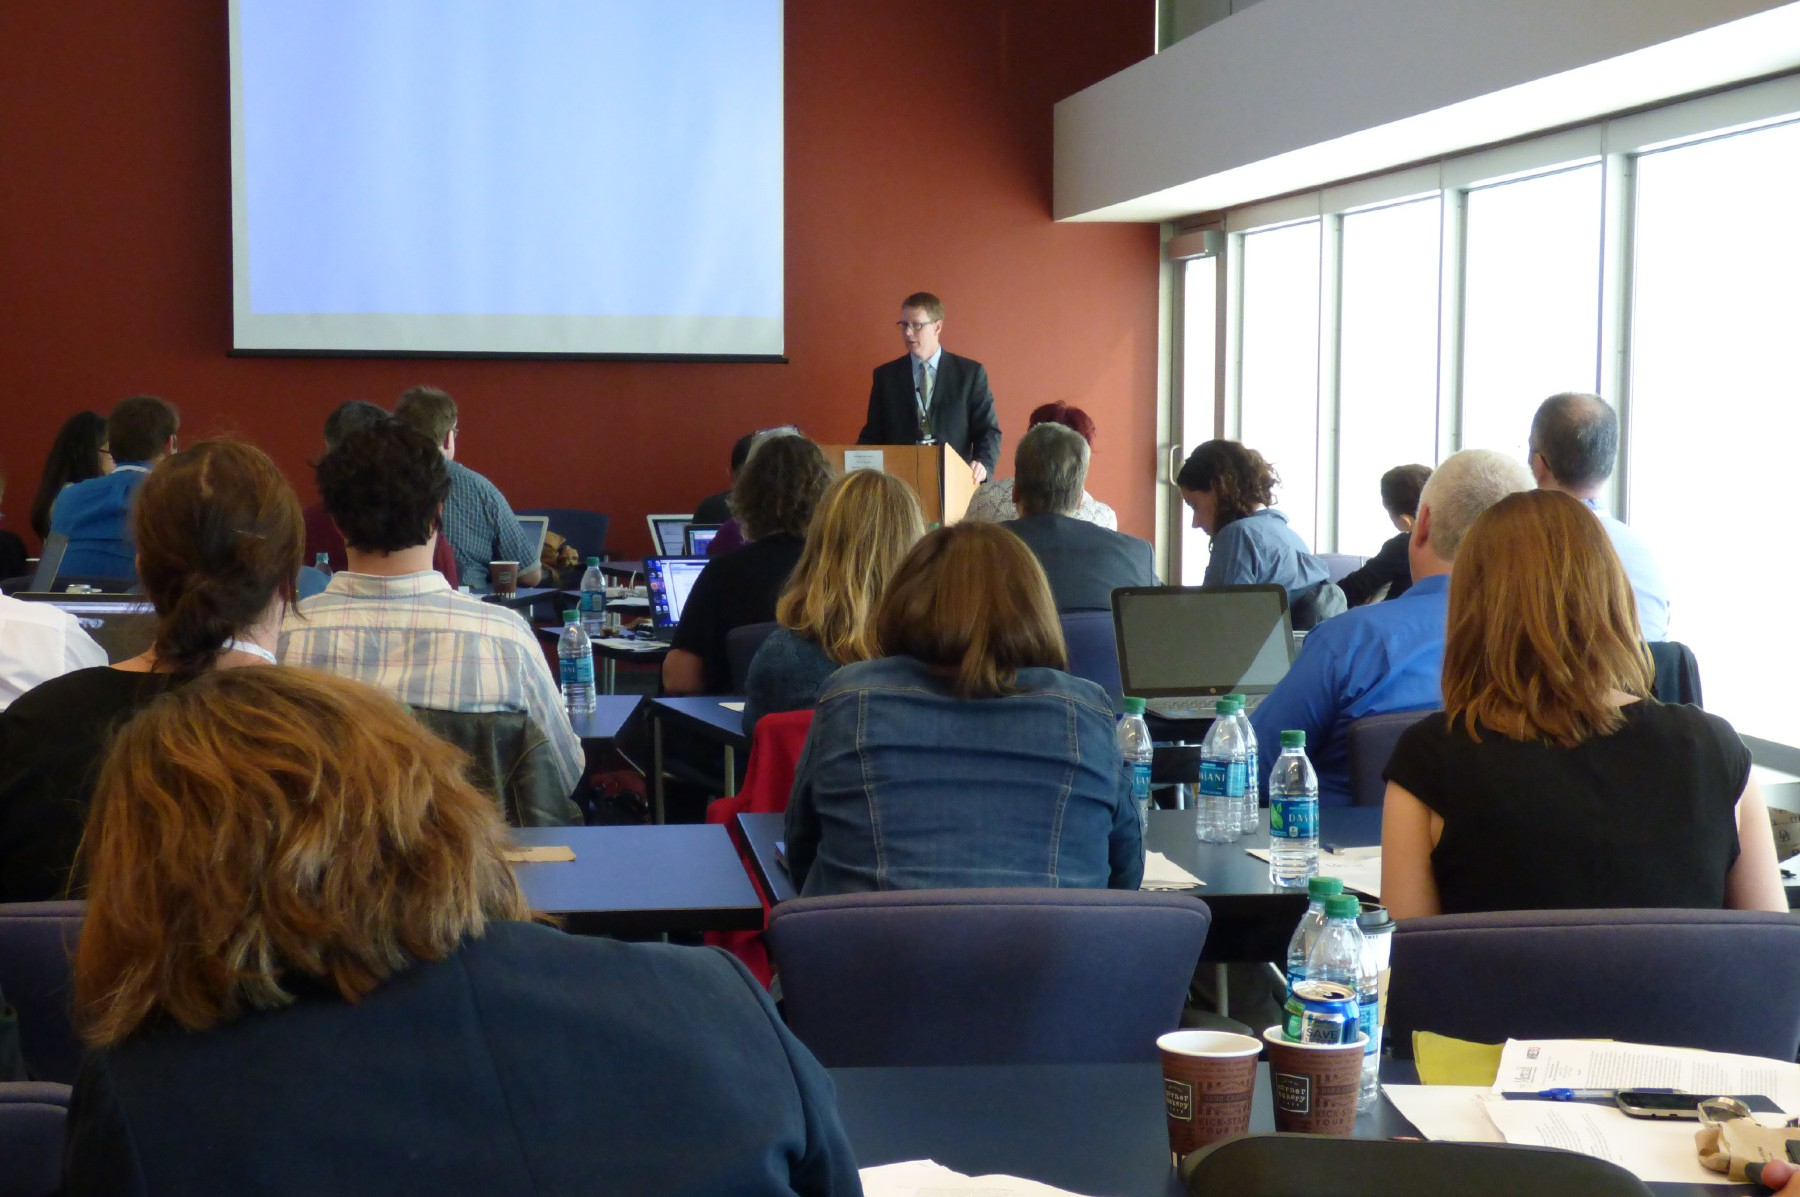 Climate Change and the News Seminar for journalists in Chicago